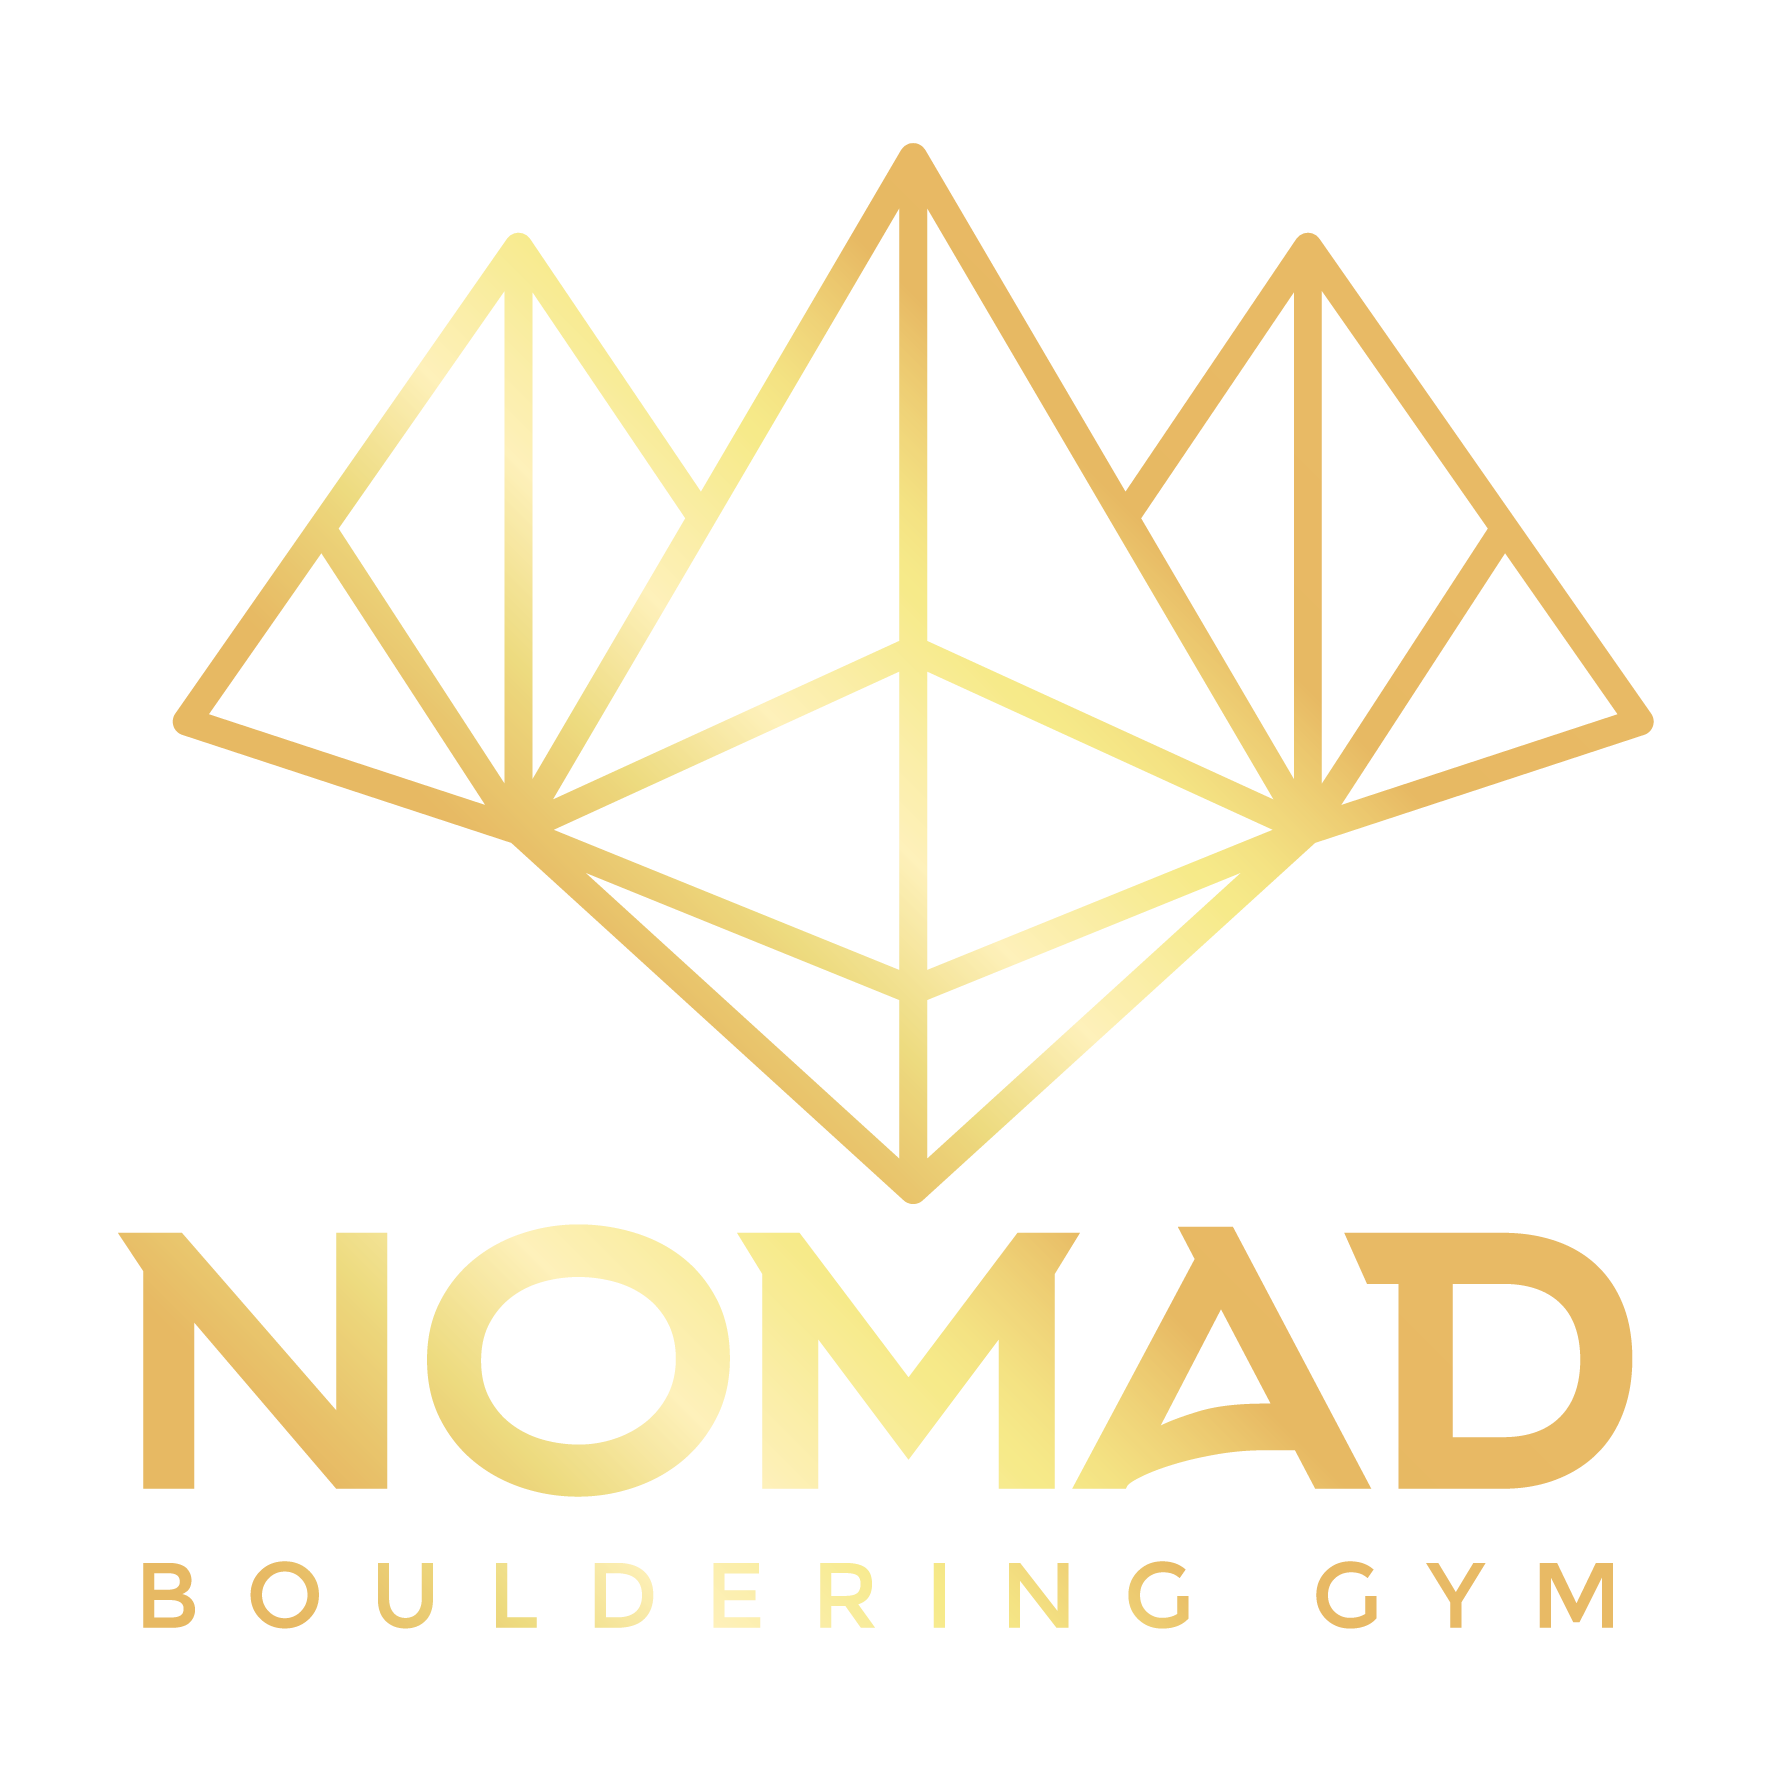 NOMAD_Image_2DCURVE_2_Climbers.png